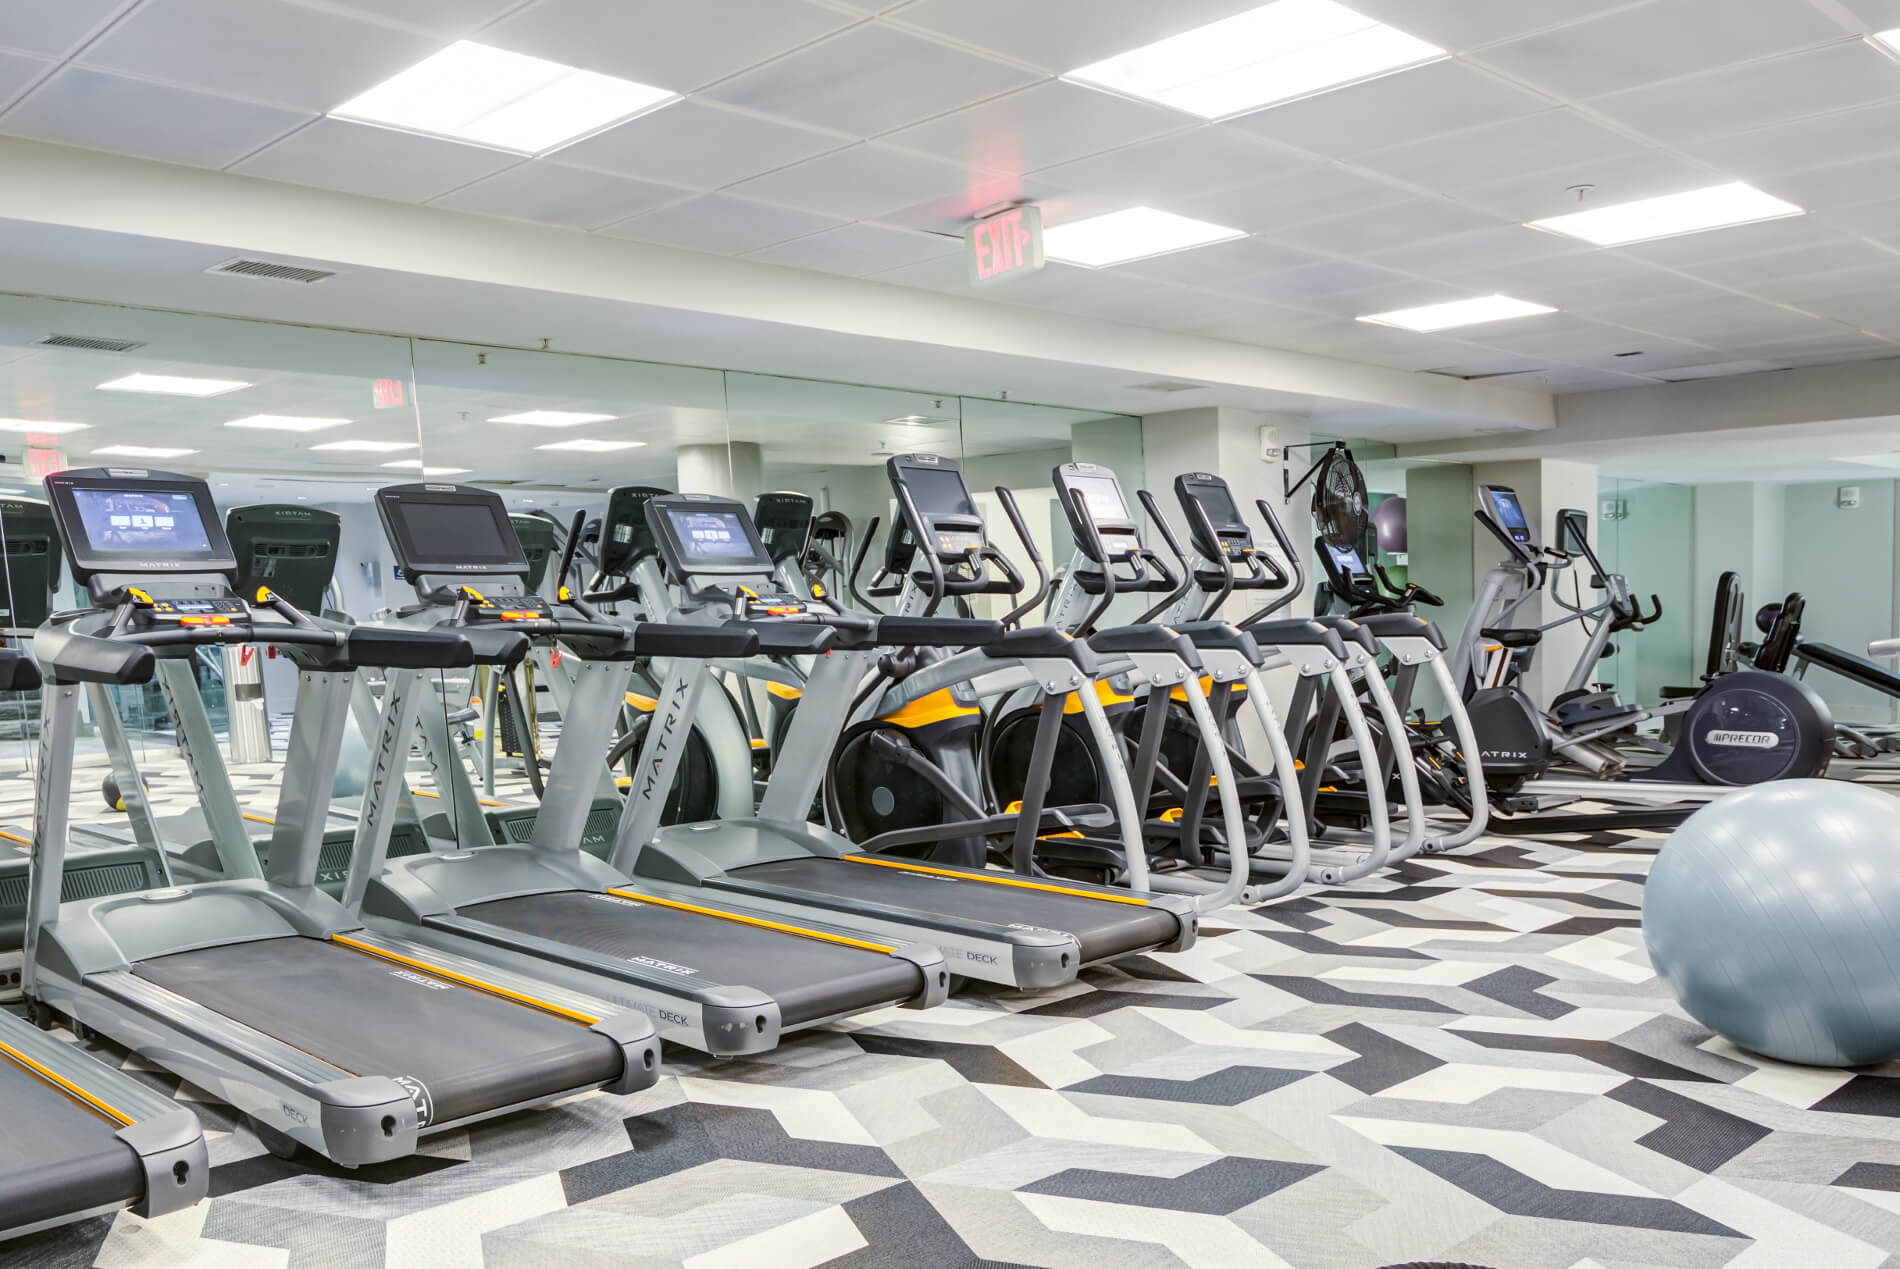 Gym with treadmills, elliptical trainers and bikes